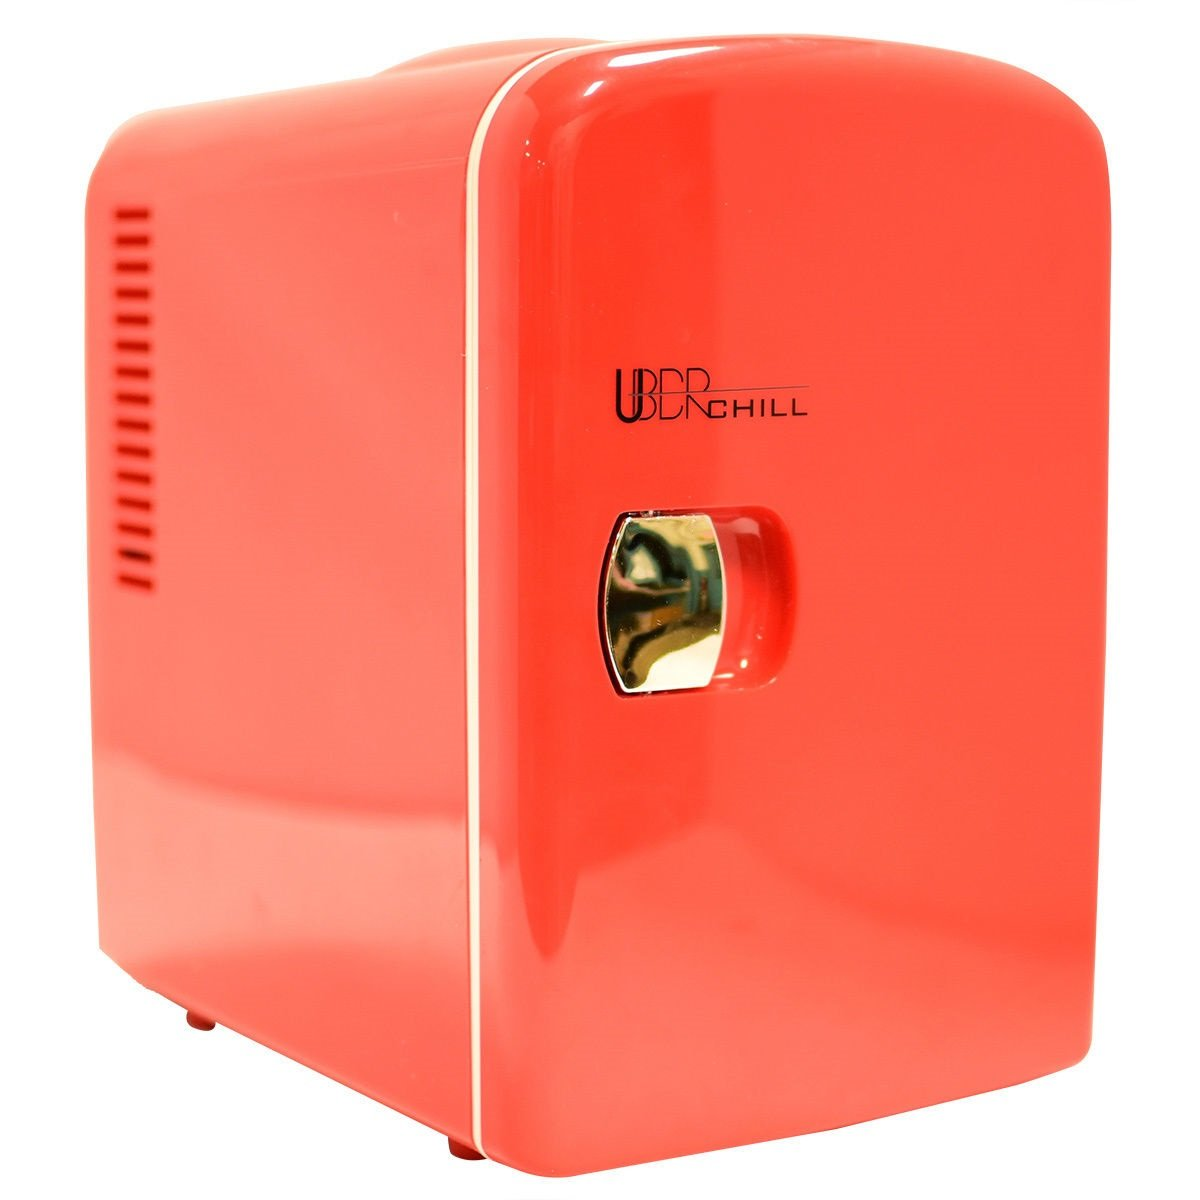 Uber Appliance UB-CH1 Portable Mini Fridge 6 can cooler and warmer for bedroom, office or dorm AC & DC Red - 110V